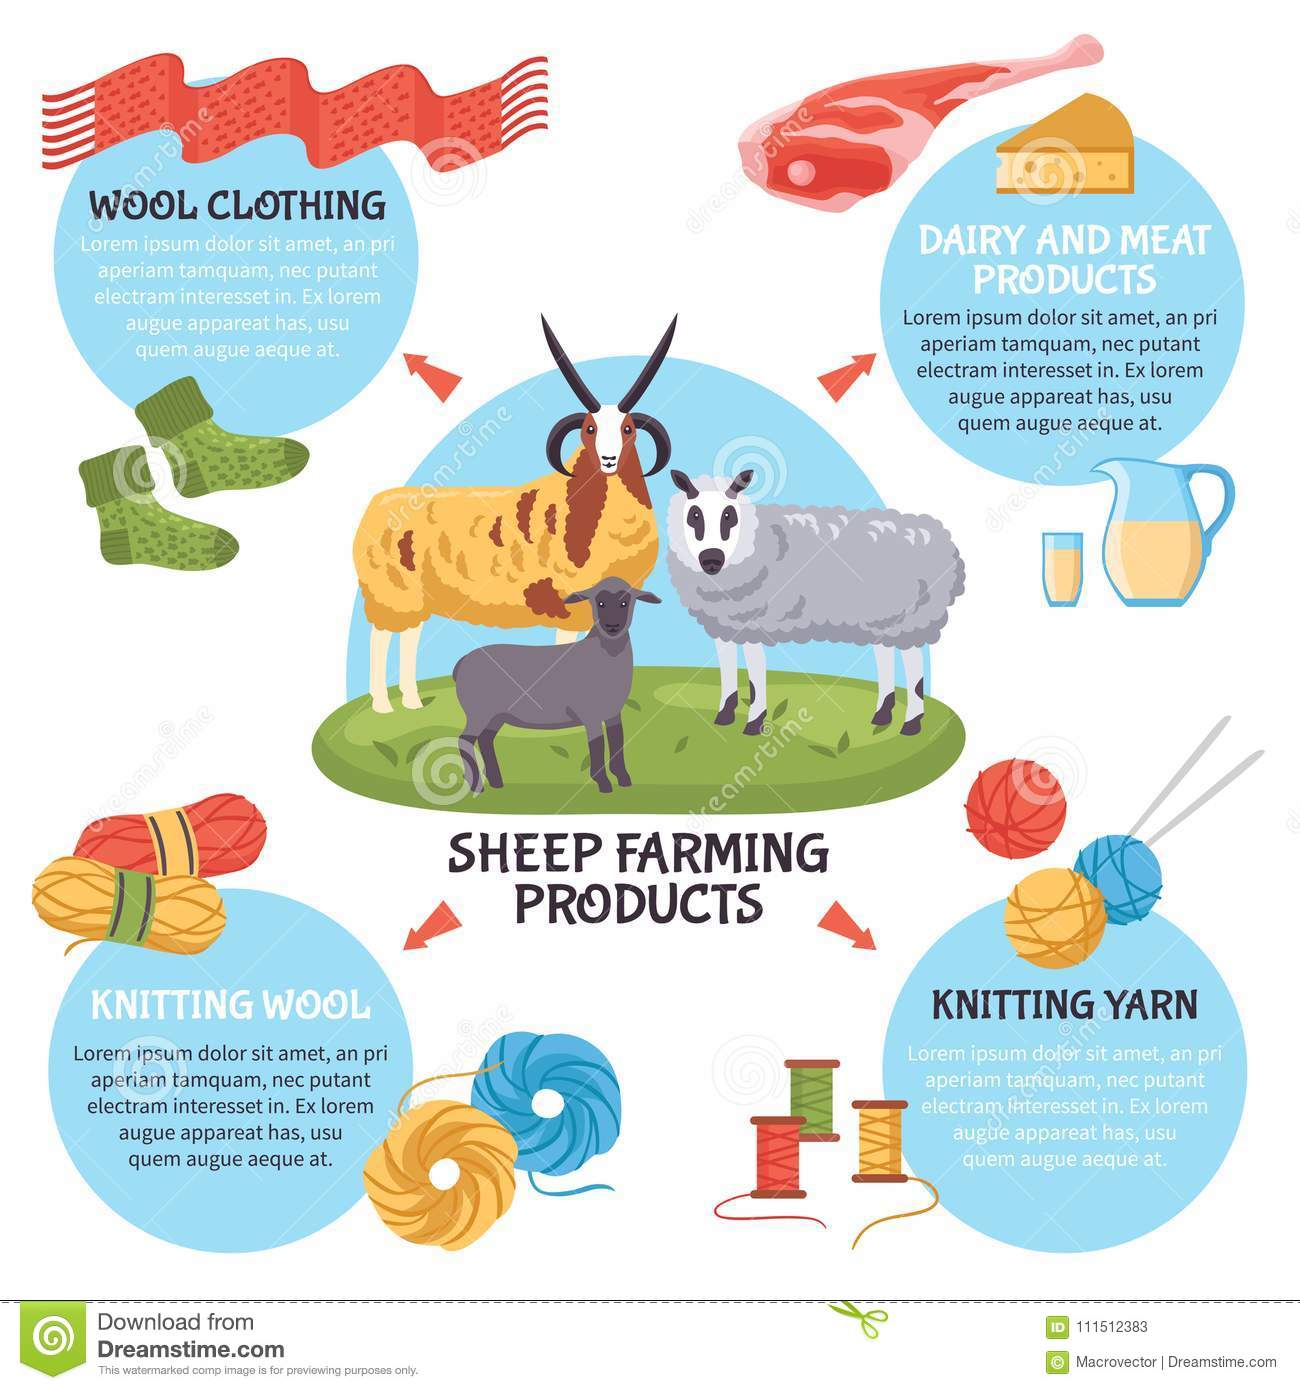 sheep farm infographic poster breeding infographics wool yarn dairy meat vector clothing flat illustration animals clipart dreamstime preview illustrations vectors